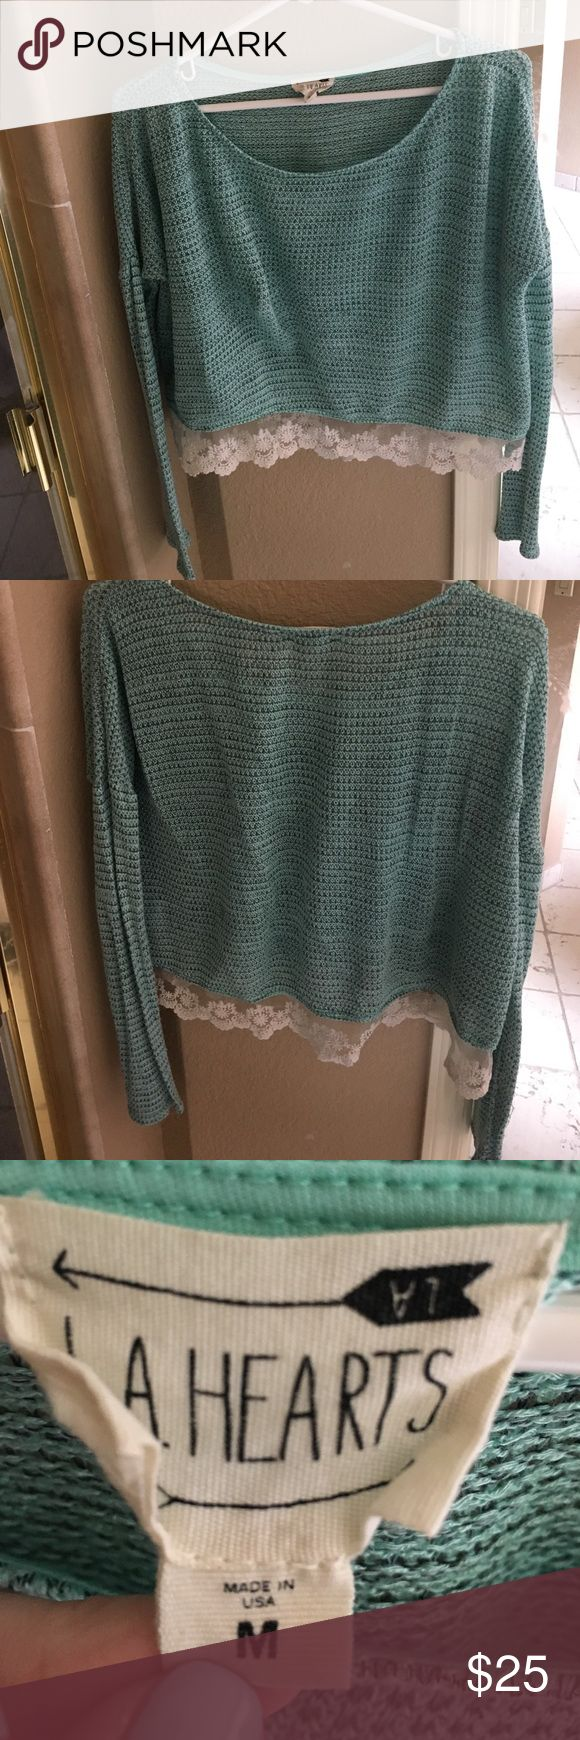 LA Hearts Lace Trim Mint Sweater This LA hearts mint green woven sweater is slightly cropped and has a lace trim. It is a size medium and in excellent condition! LA Hearts Sweaters Crew & Scoop Necks